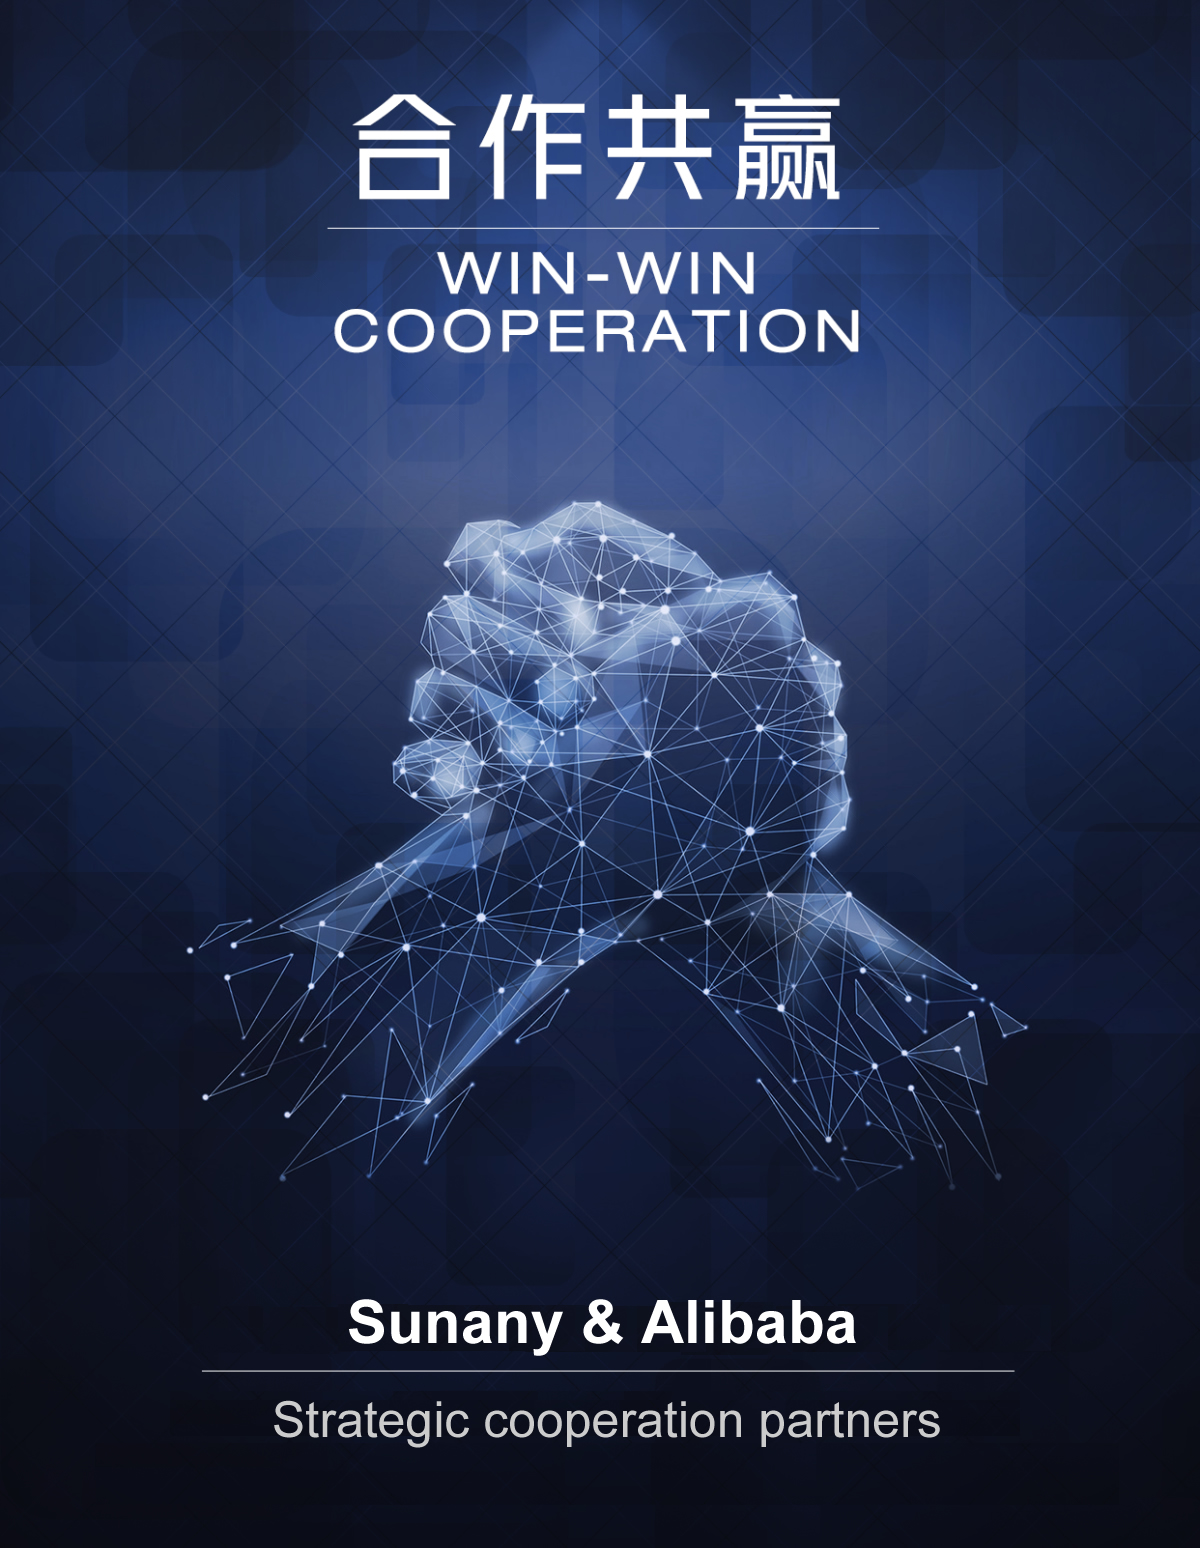 Sunany becomes a top partner of Alibaba in POS industry